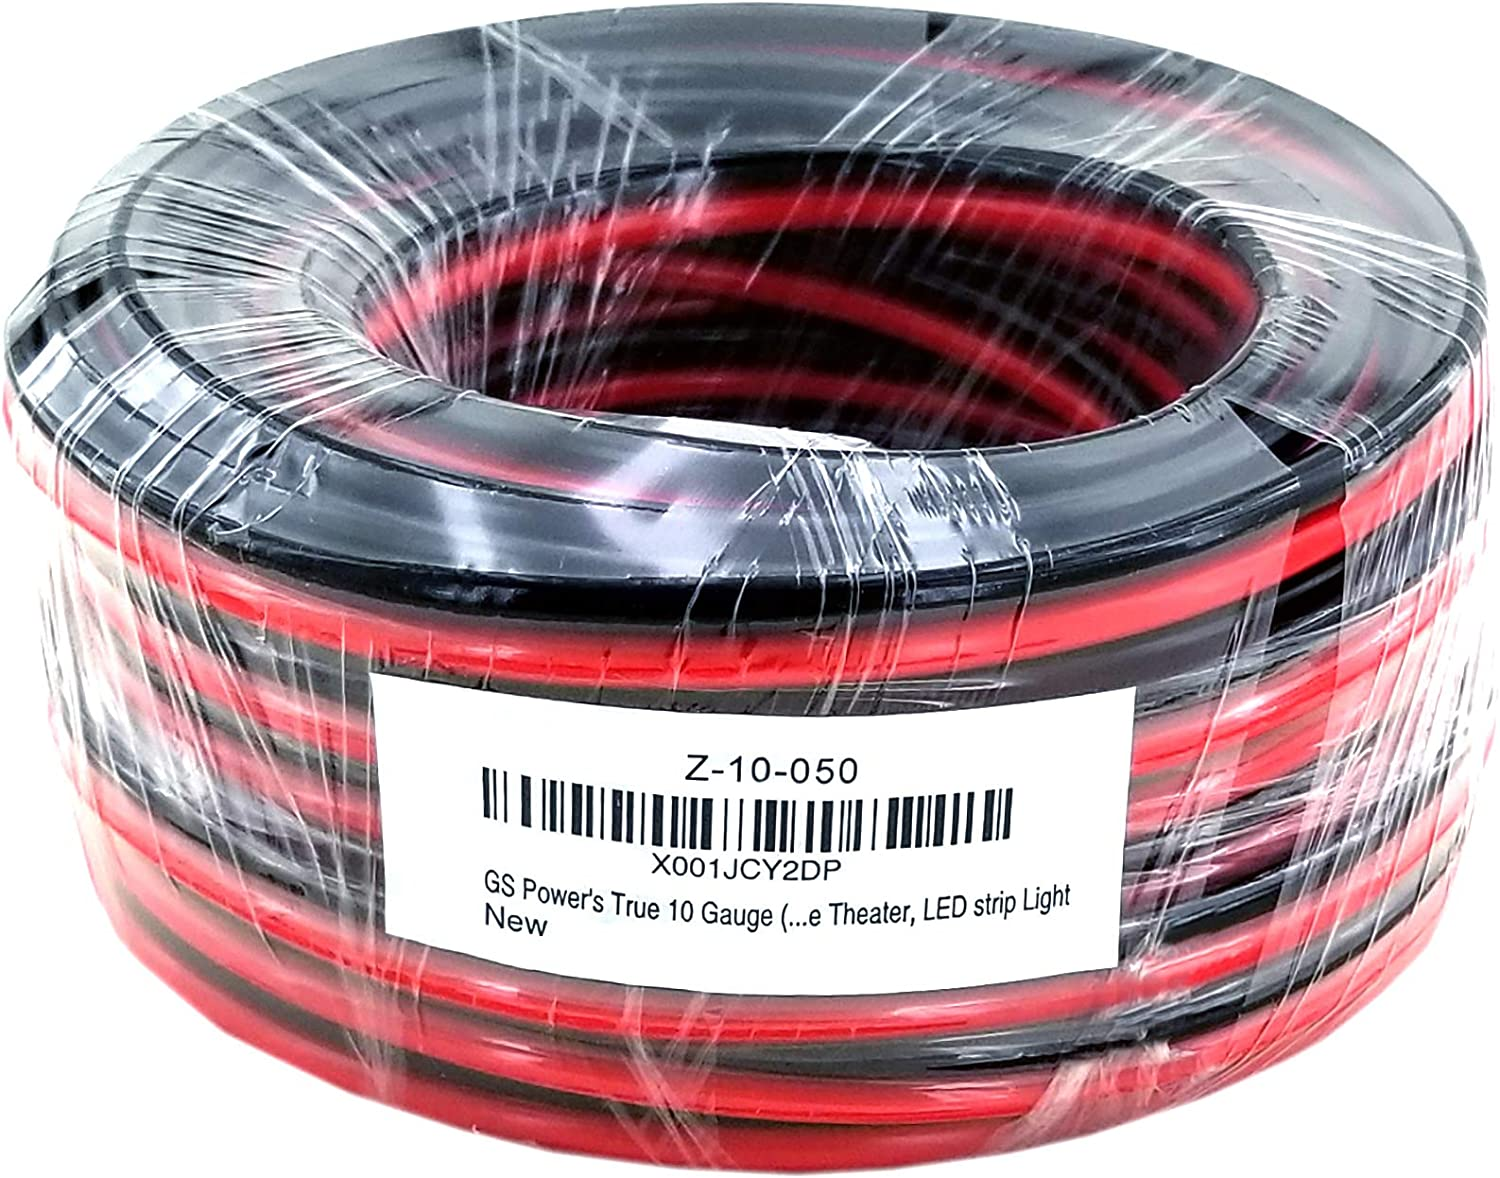 GS Power Flexible 10 AWG (American Wire Gauge) 50 Feet Stranded Oxygen Free Copper Red/Black Bonded Zip Cord Cable for Car Audio Stereo Amplifier 12Volt Automotive Harness LED Light Wiring: Automotive